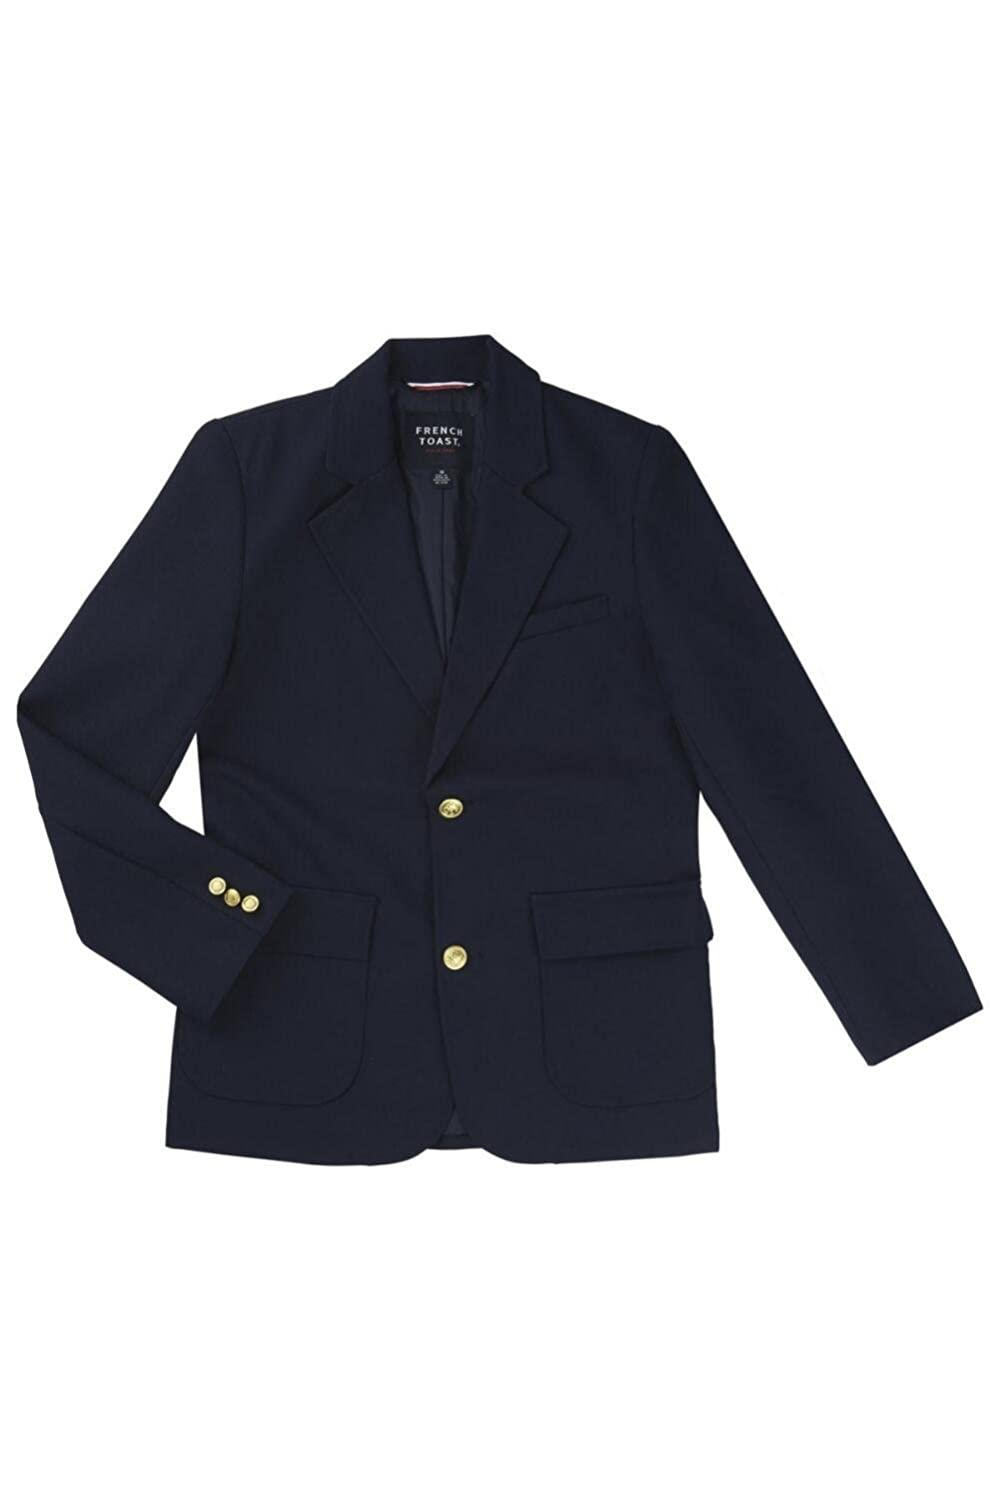 French Toast Boys' School Blazer 1428S